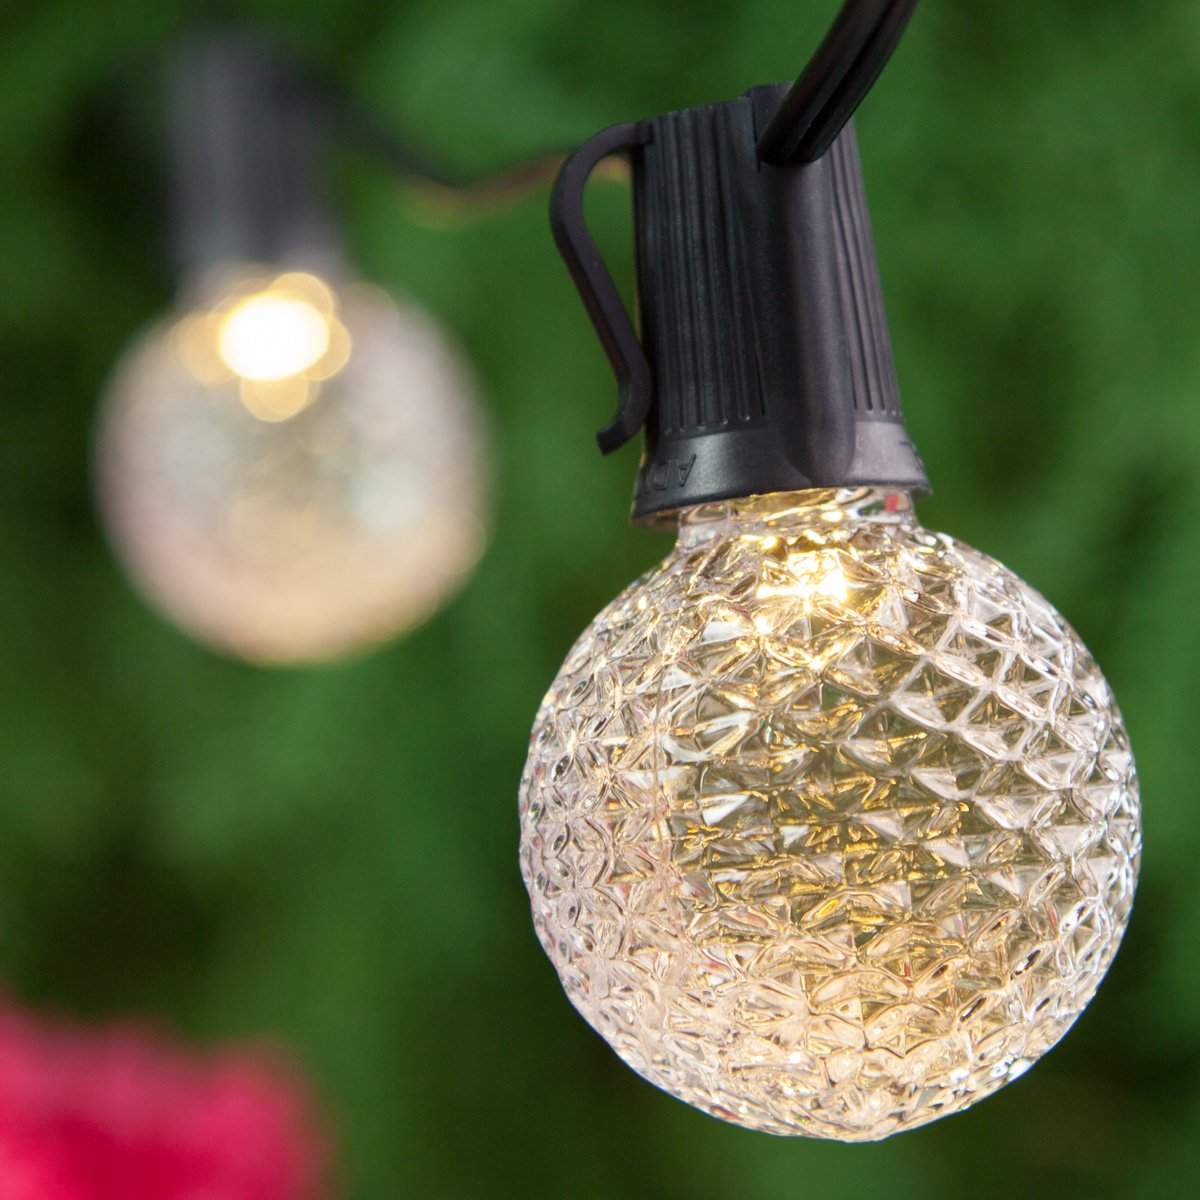 OptiCore Heavy Duty Patio Lights LED Lights Patio Lights String LED, Shatter Resistant Bulbs, Commercial LED Globe Lights (50 Lights, 50', E17, Warm White G50 Bulbs on Black Wire)